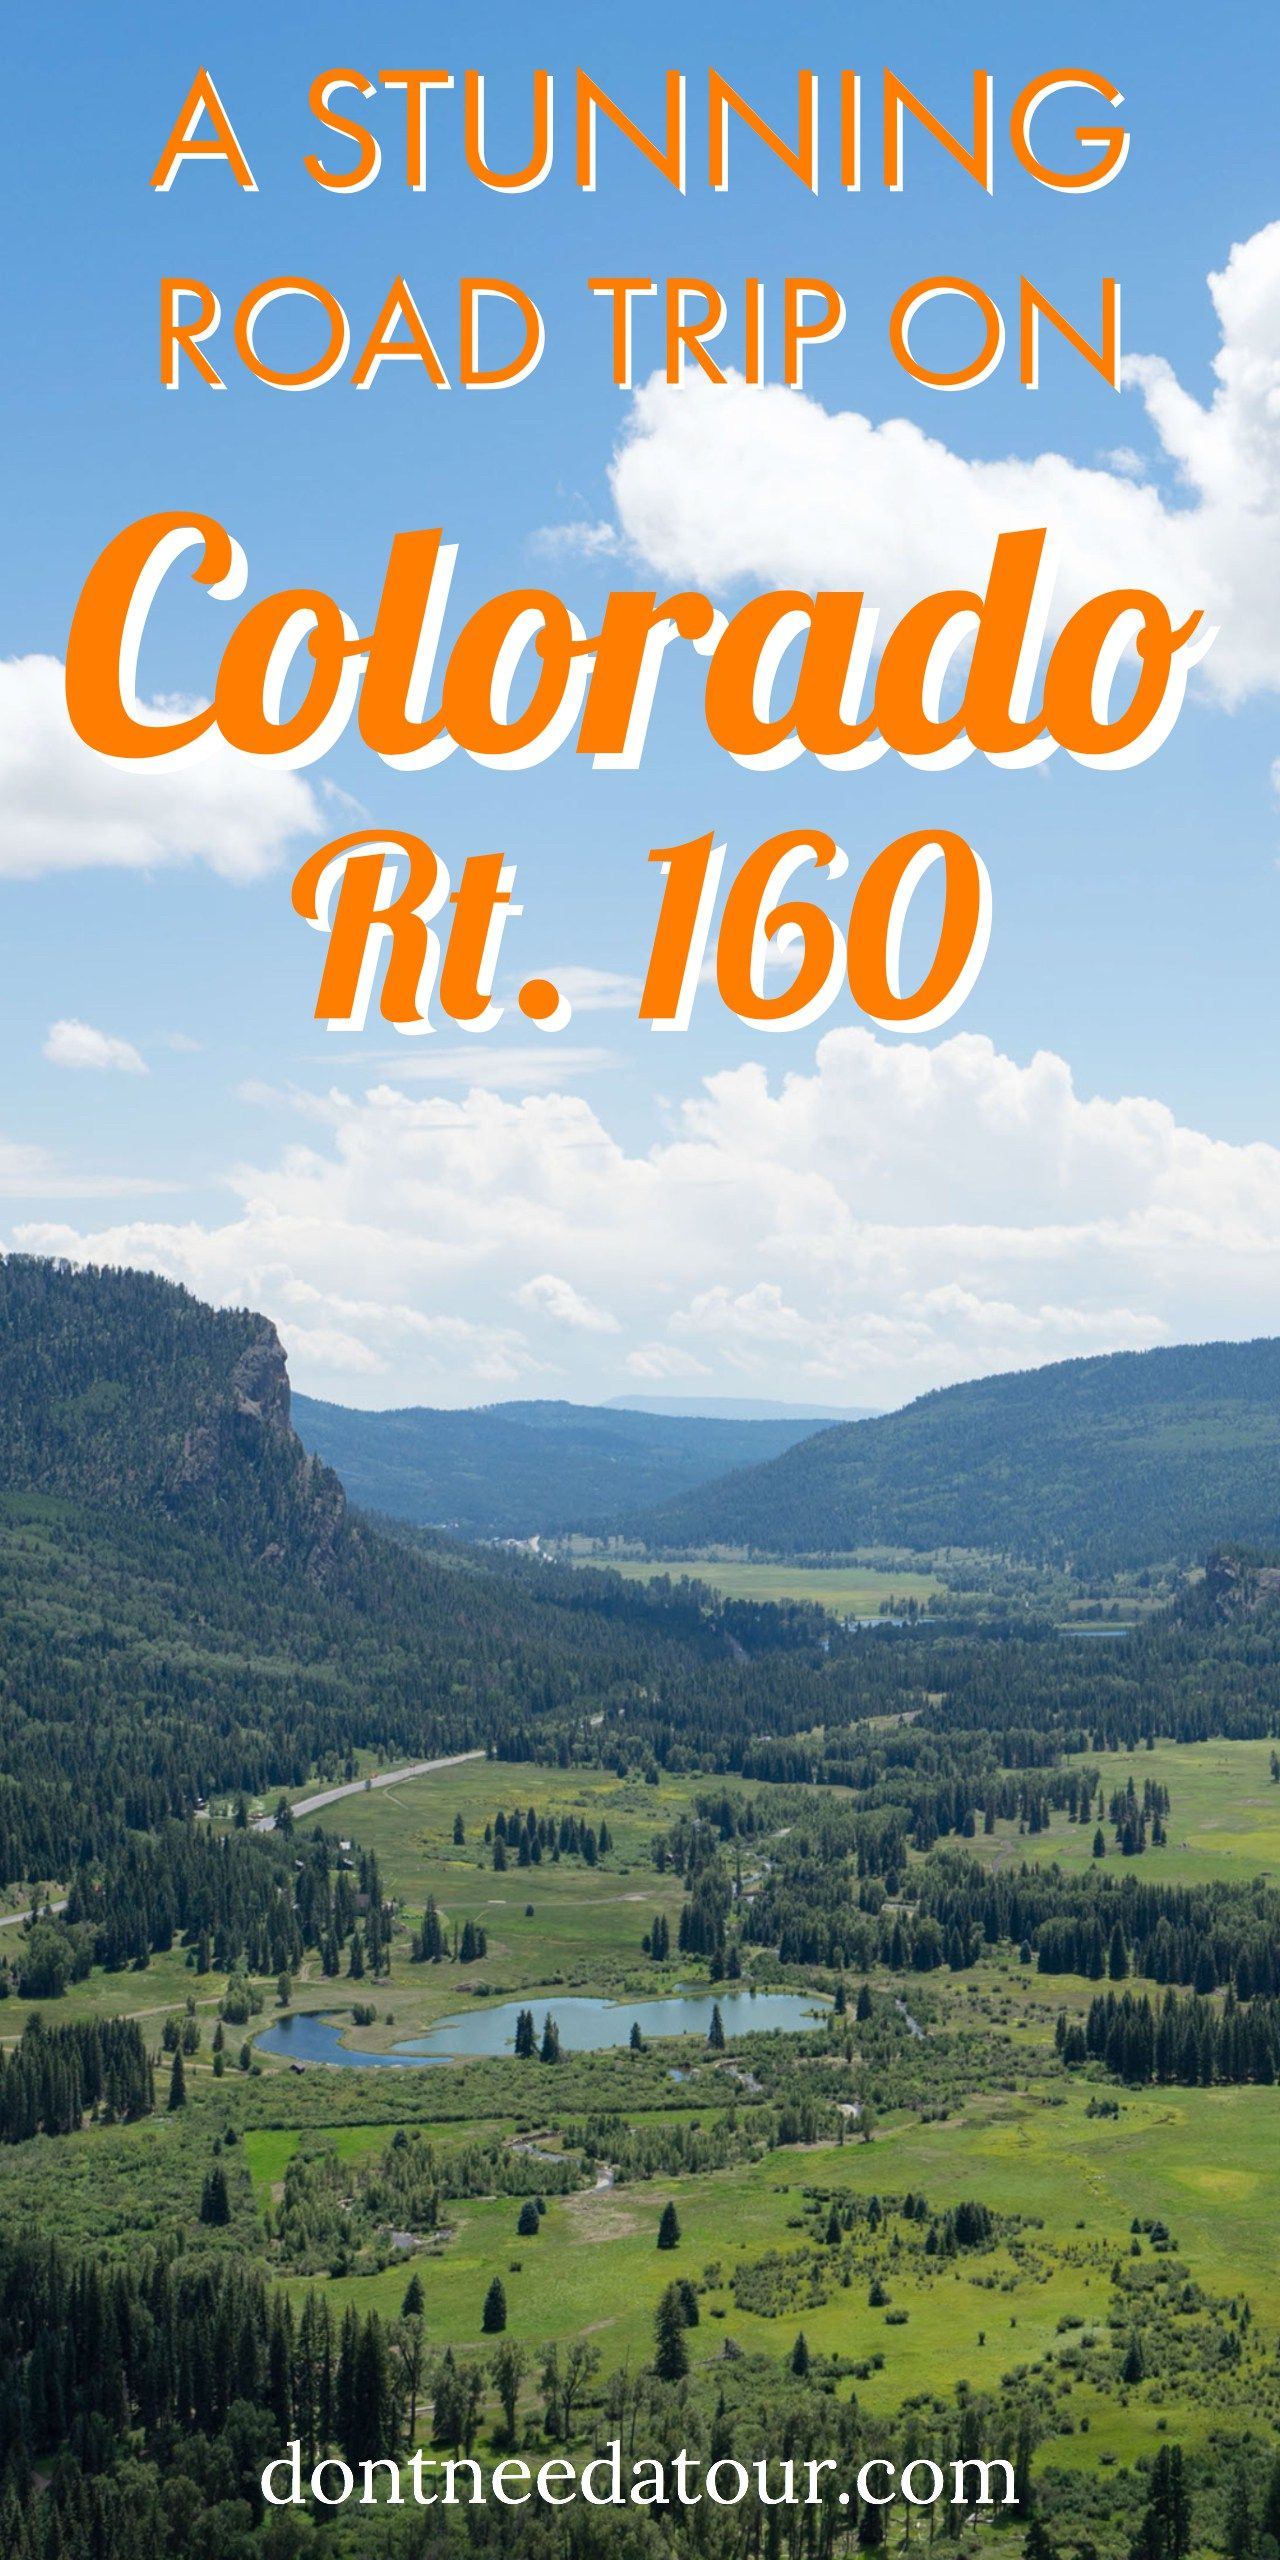 Stunning Road Trip on Colorado Route 160 (With images